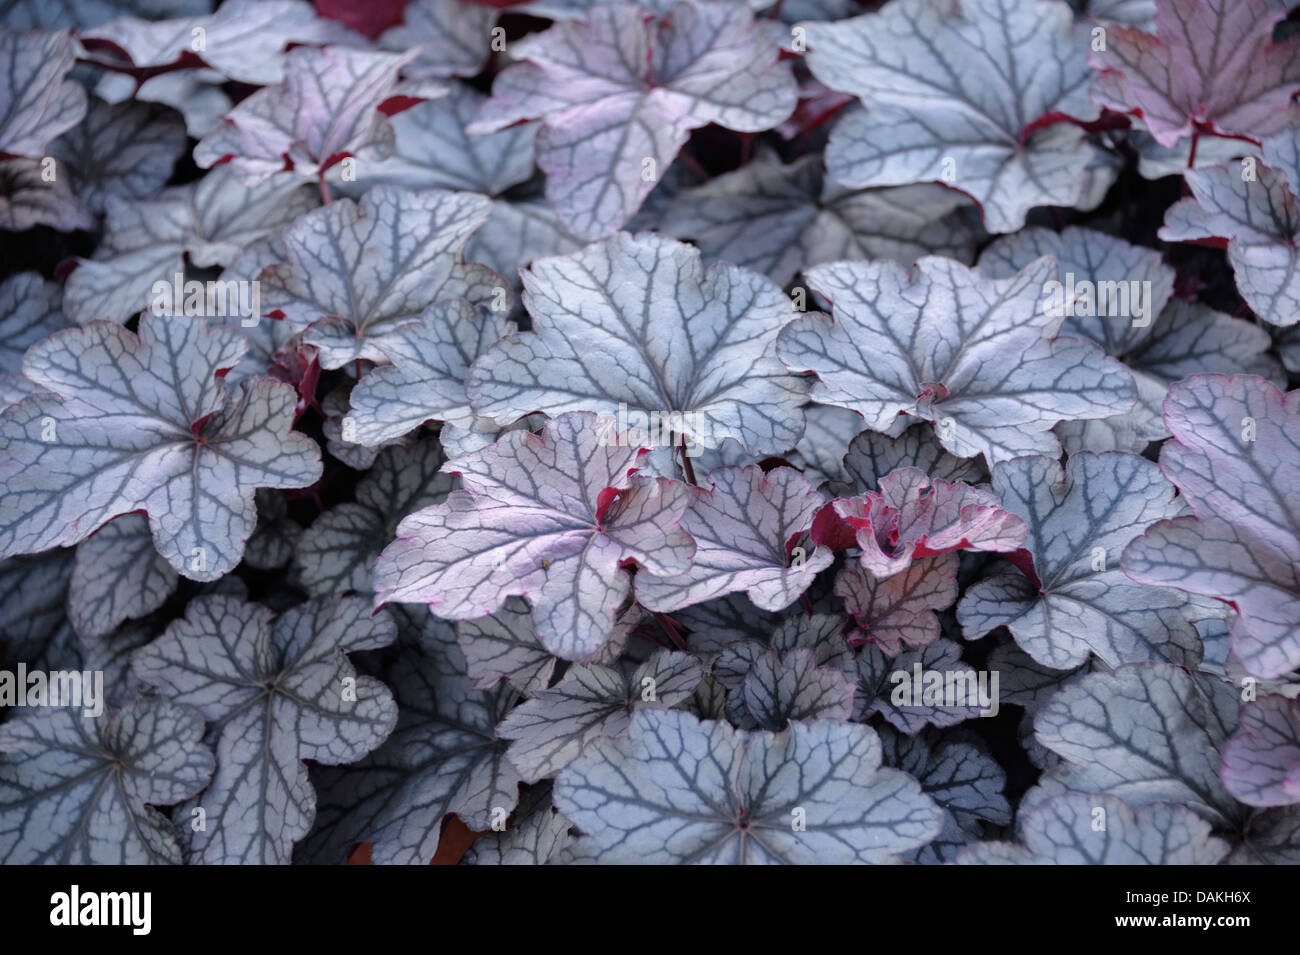 Heuchère (Heuchera 'Smotifs King', Heuchera Seasons King), le cultivar Roi Saisons Photo Stock